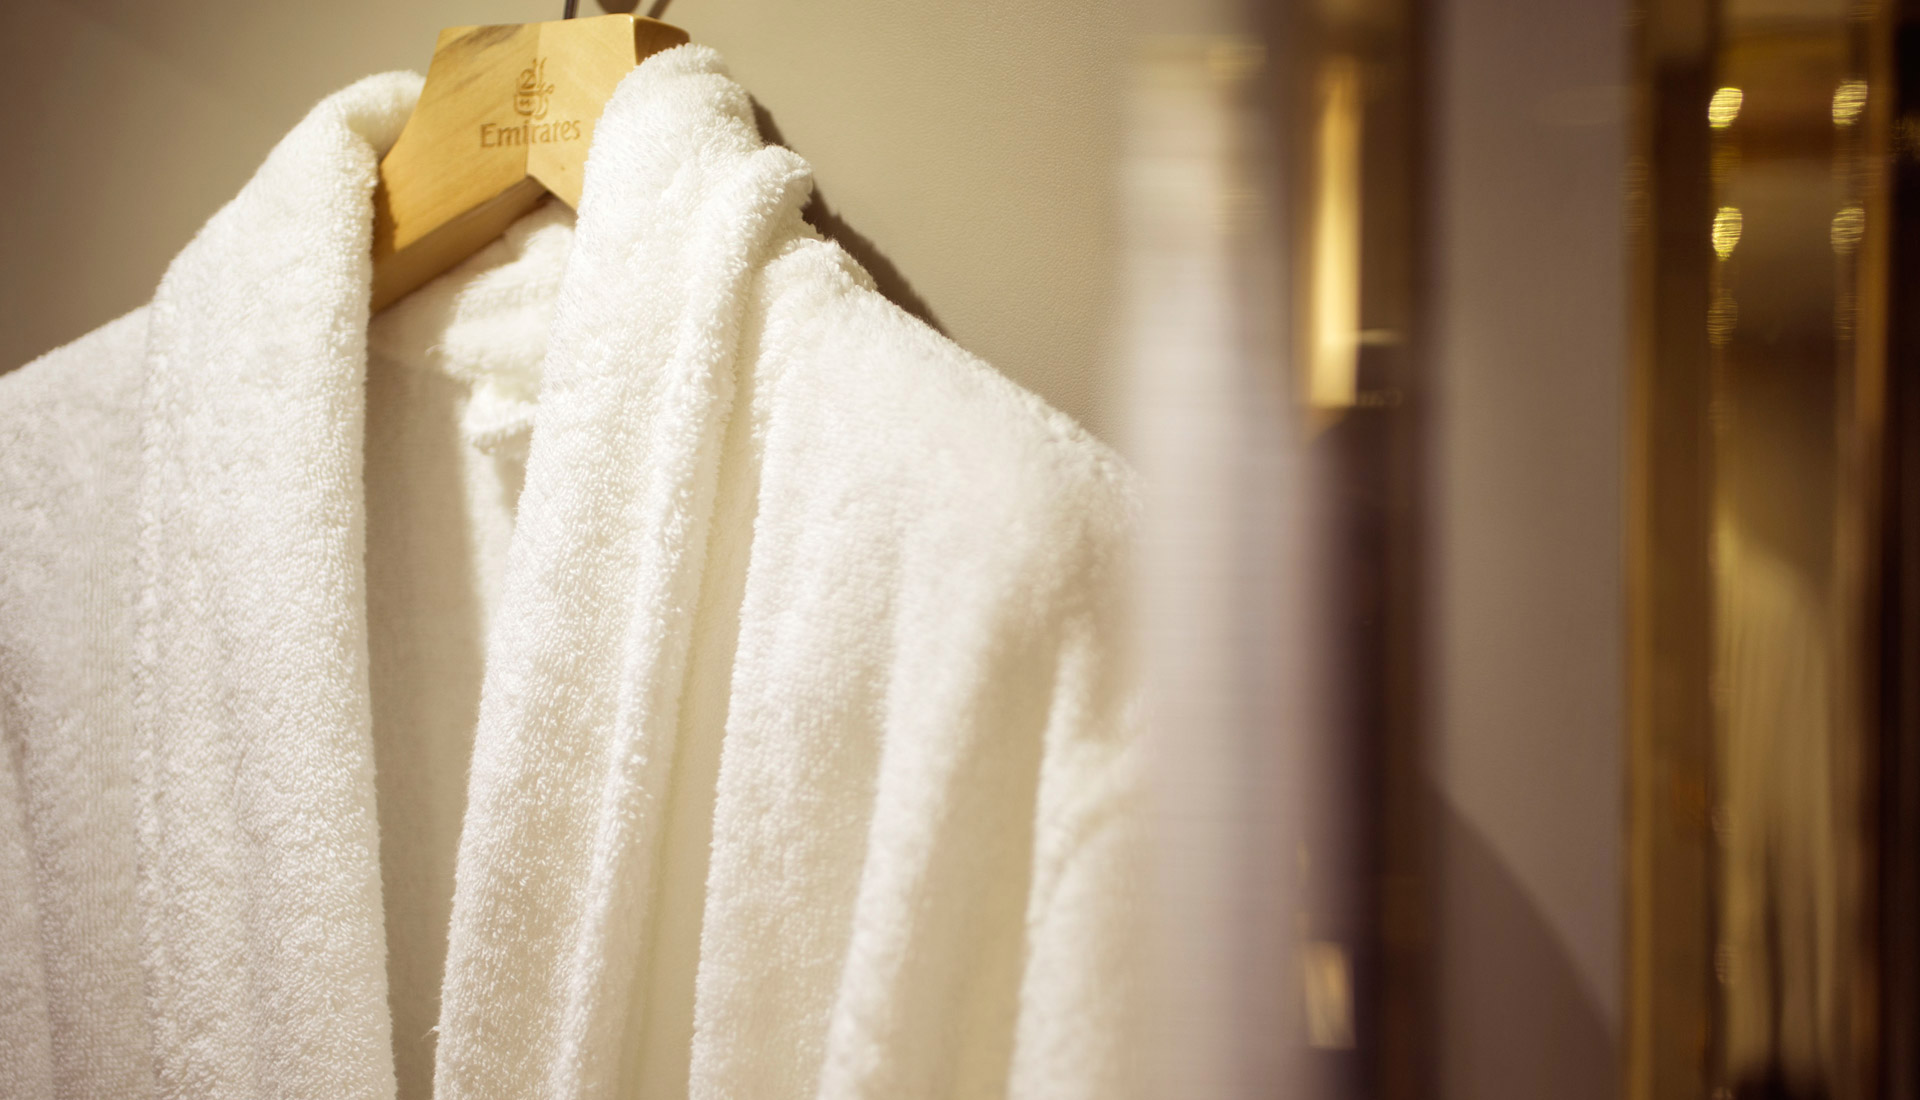 Soft bathrobes